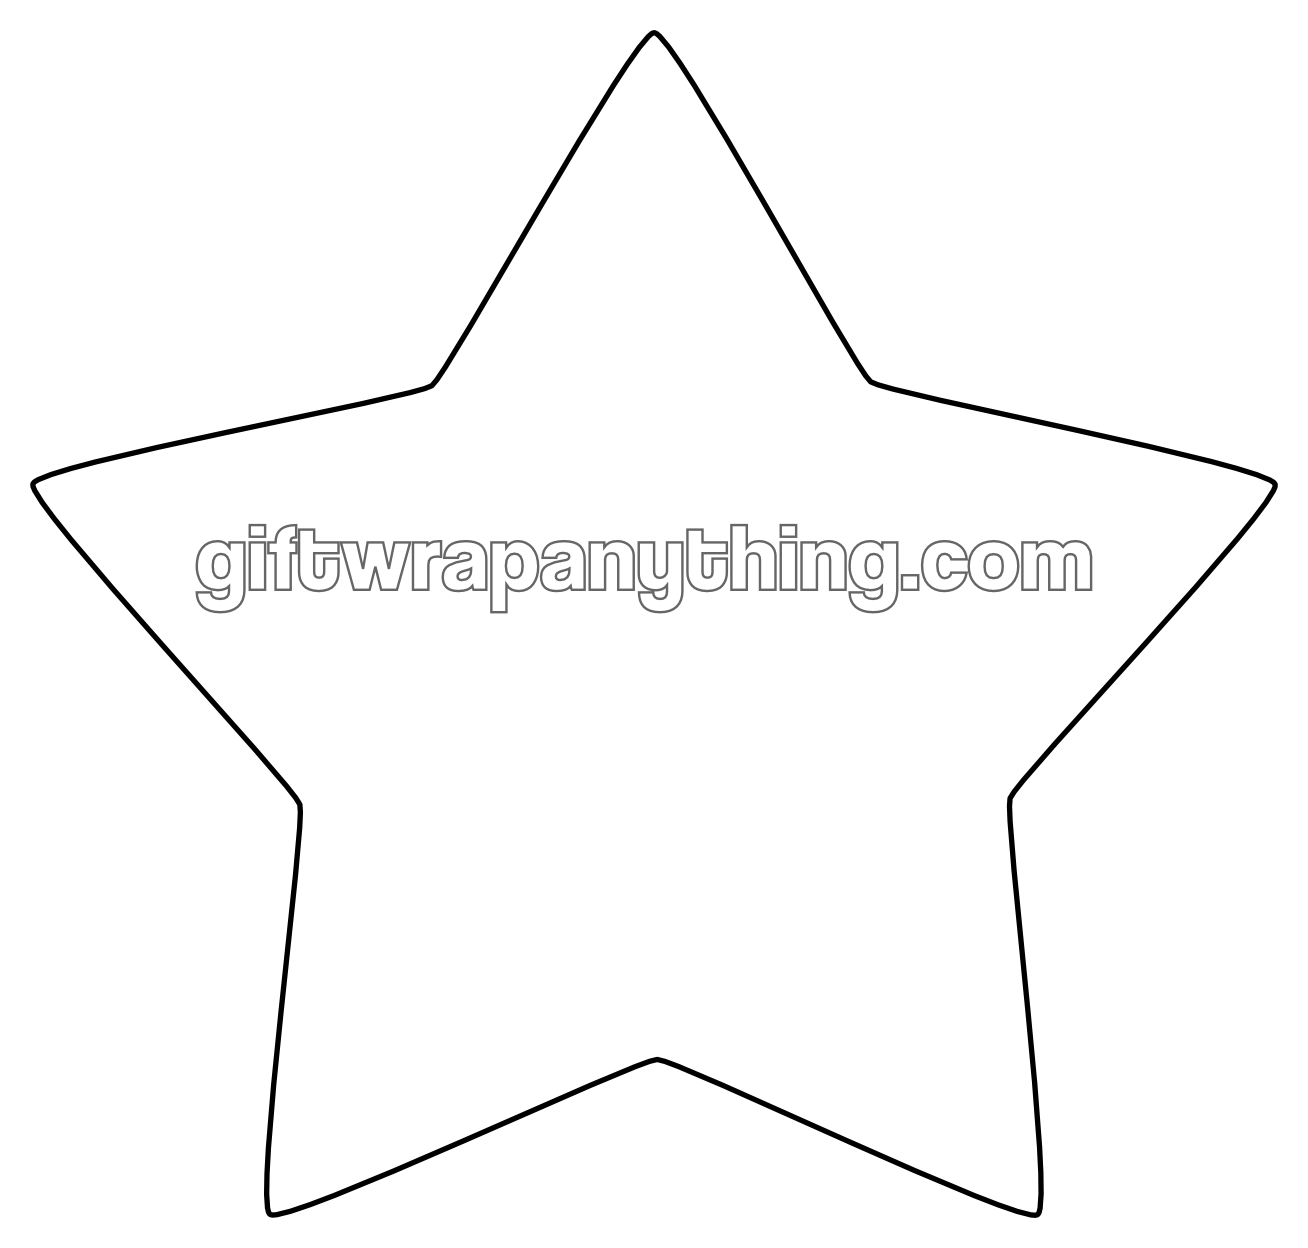 Star Cutout 1 308 1 248 Pixels